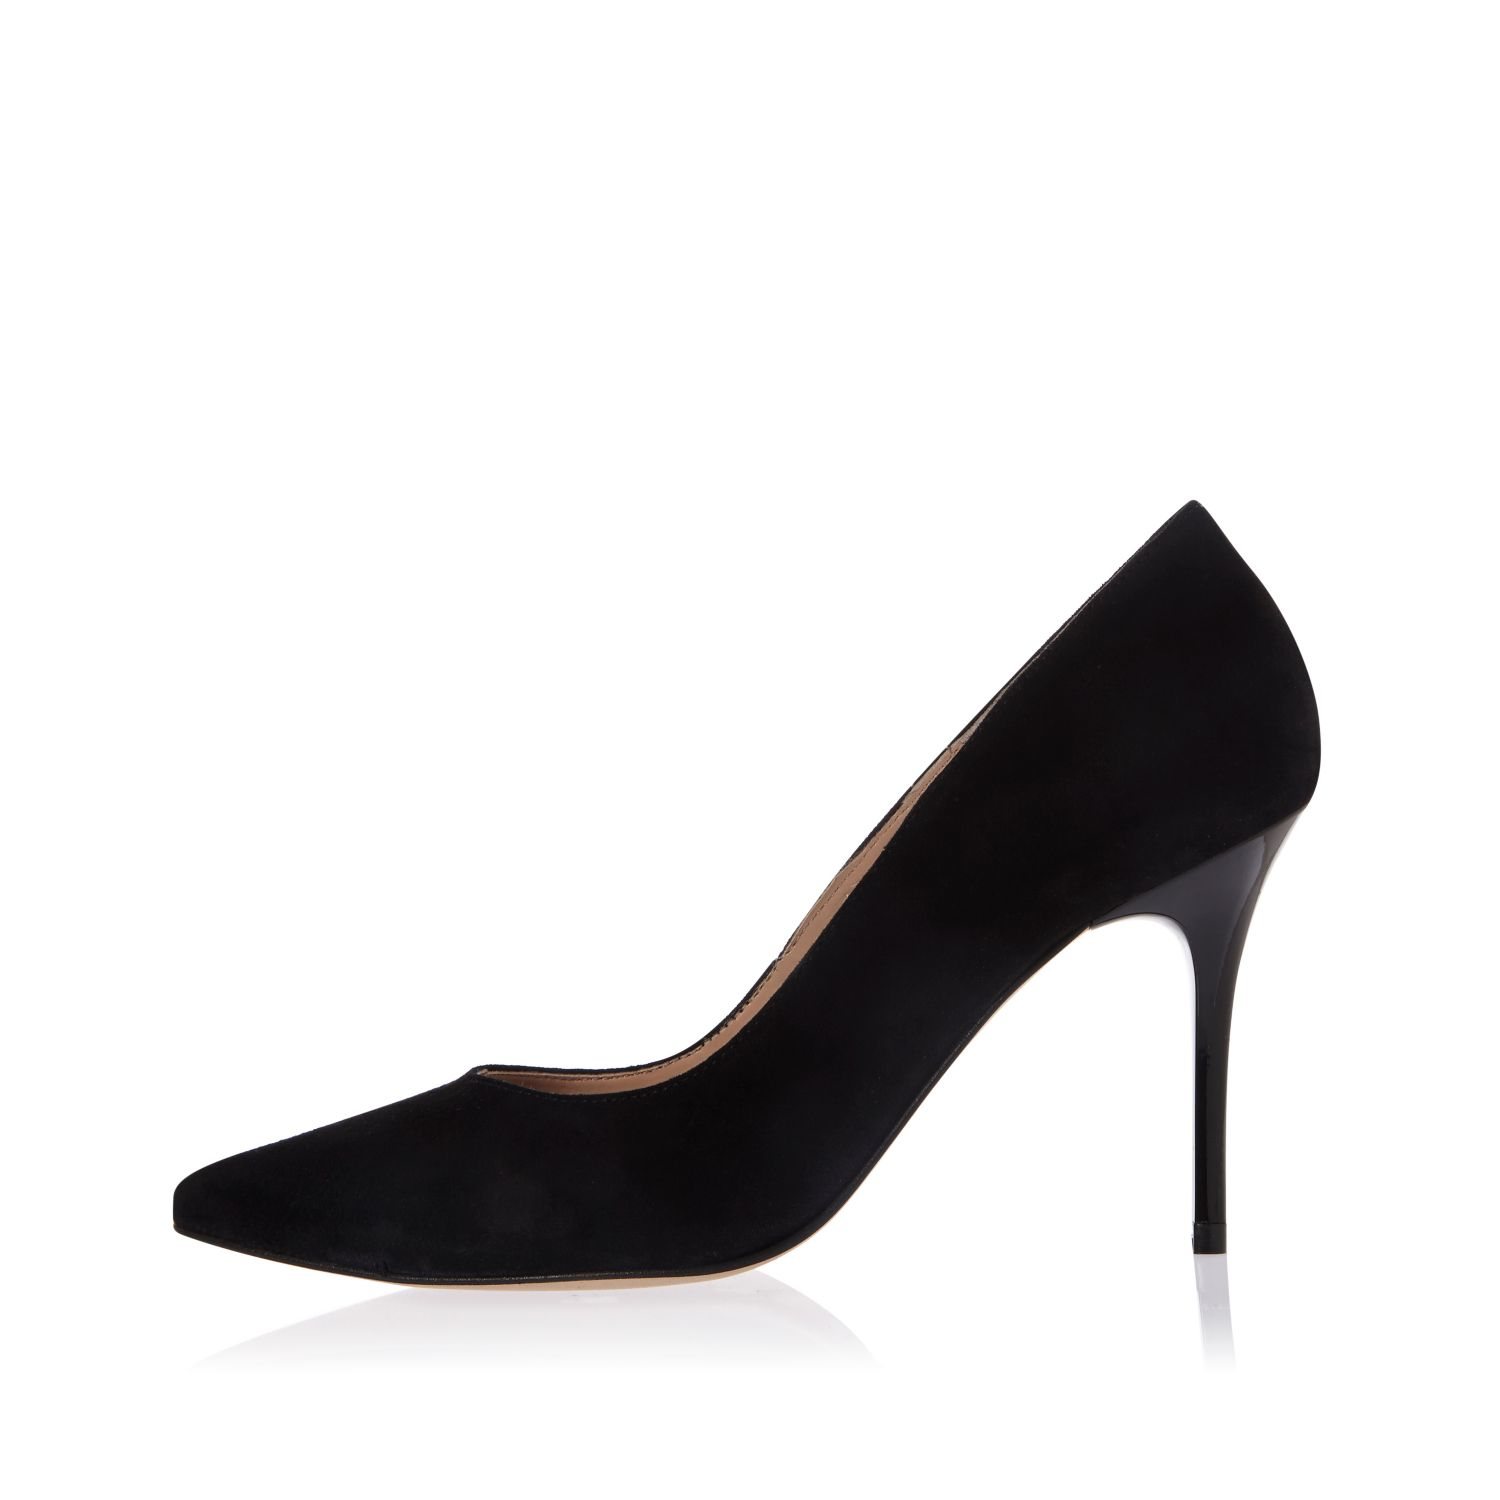 2dbc3b9176e8c River Island Black Suede Pointed Mid Heel Court Shoes in Black - Lyst